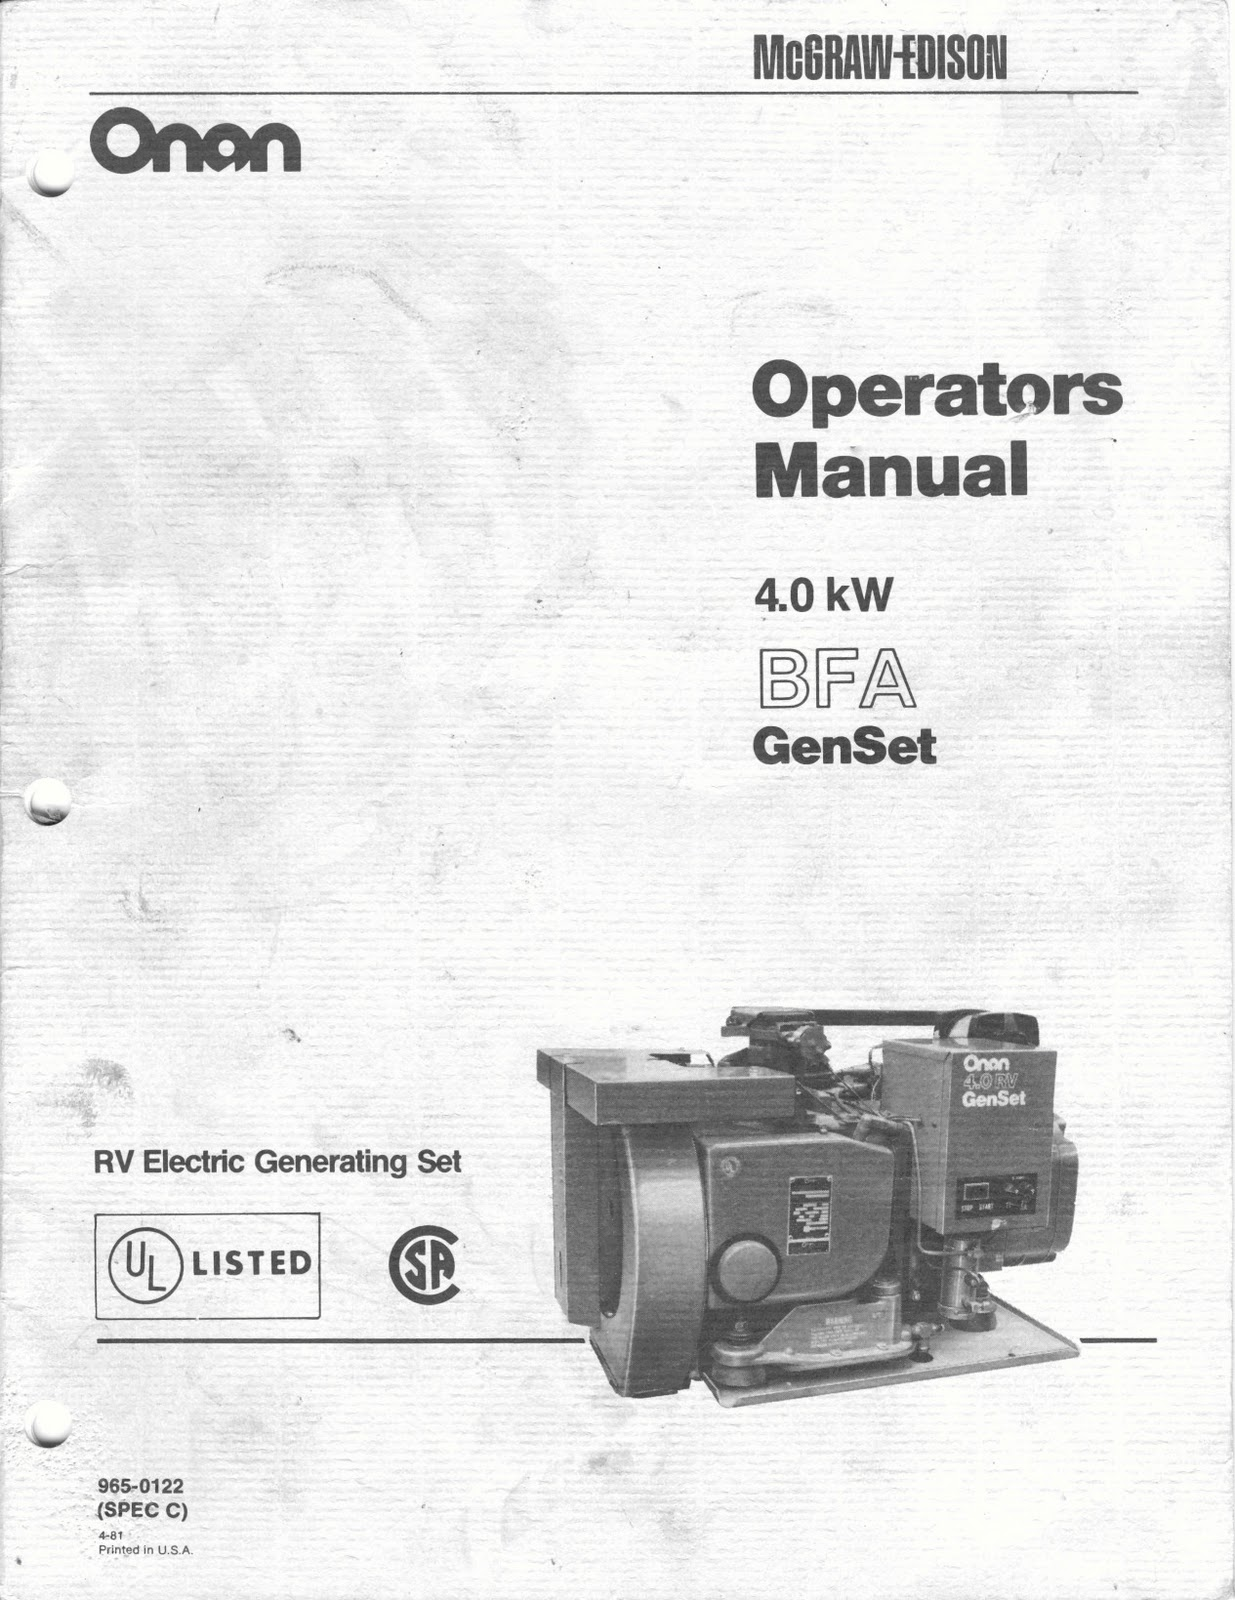 onan genset wiring diagram onan image wiring diagram 1983 fleetwood pace arrow owners manuals onan 4 0 kw bfa genset on onan genset wiring